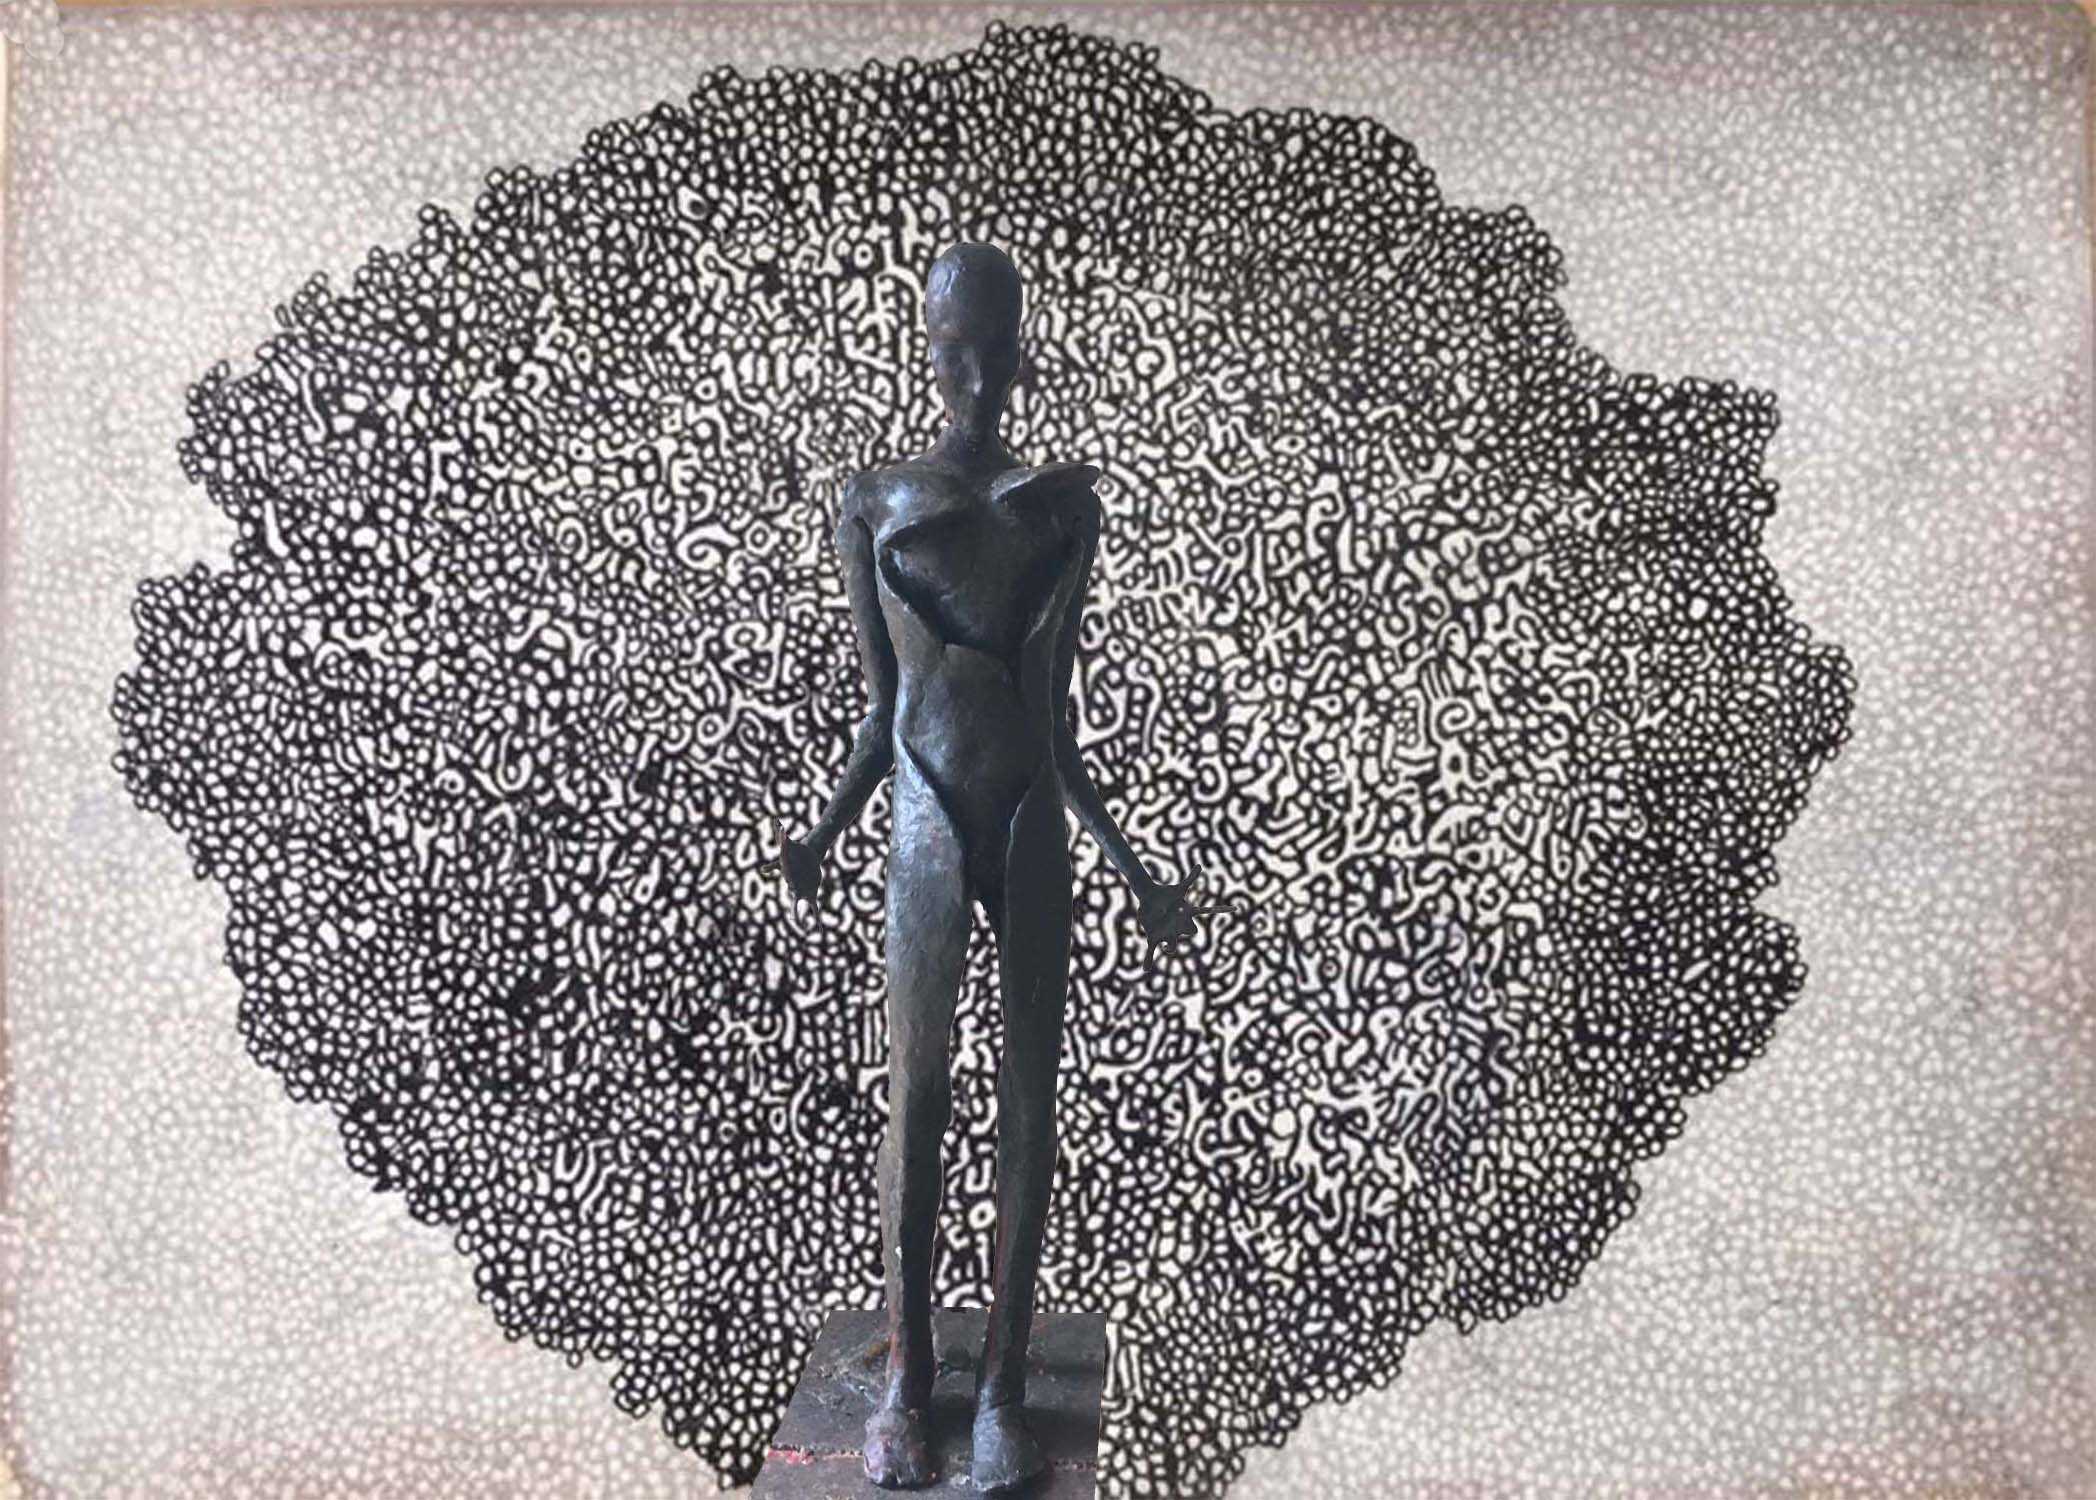 Finds Heart, 2019, pen/ink drawing and wax sculpture from Apology To Loneliness by Tom Cleveland